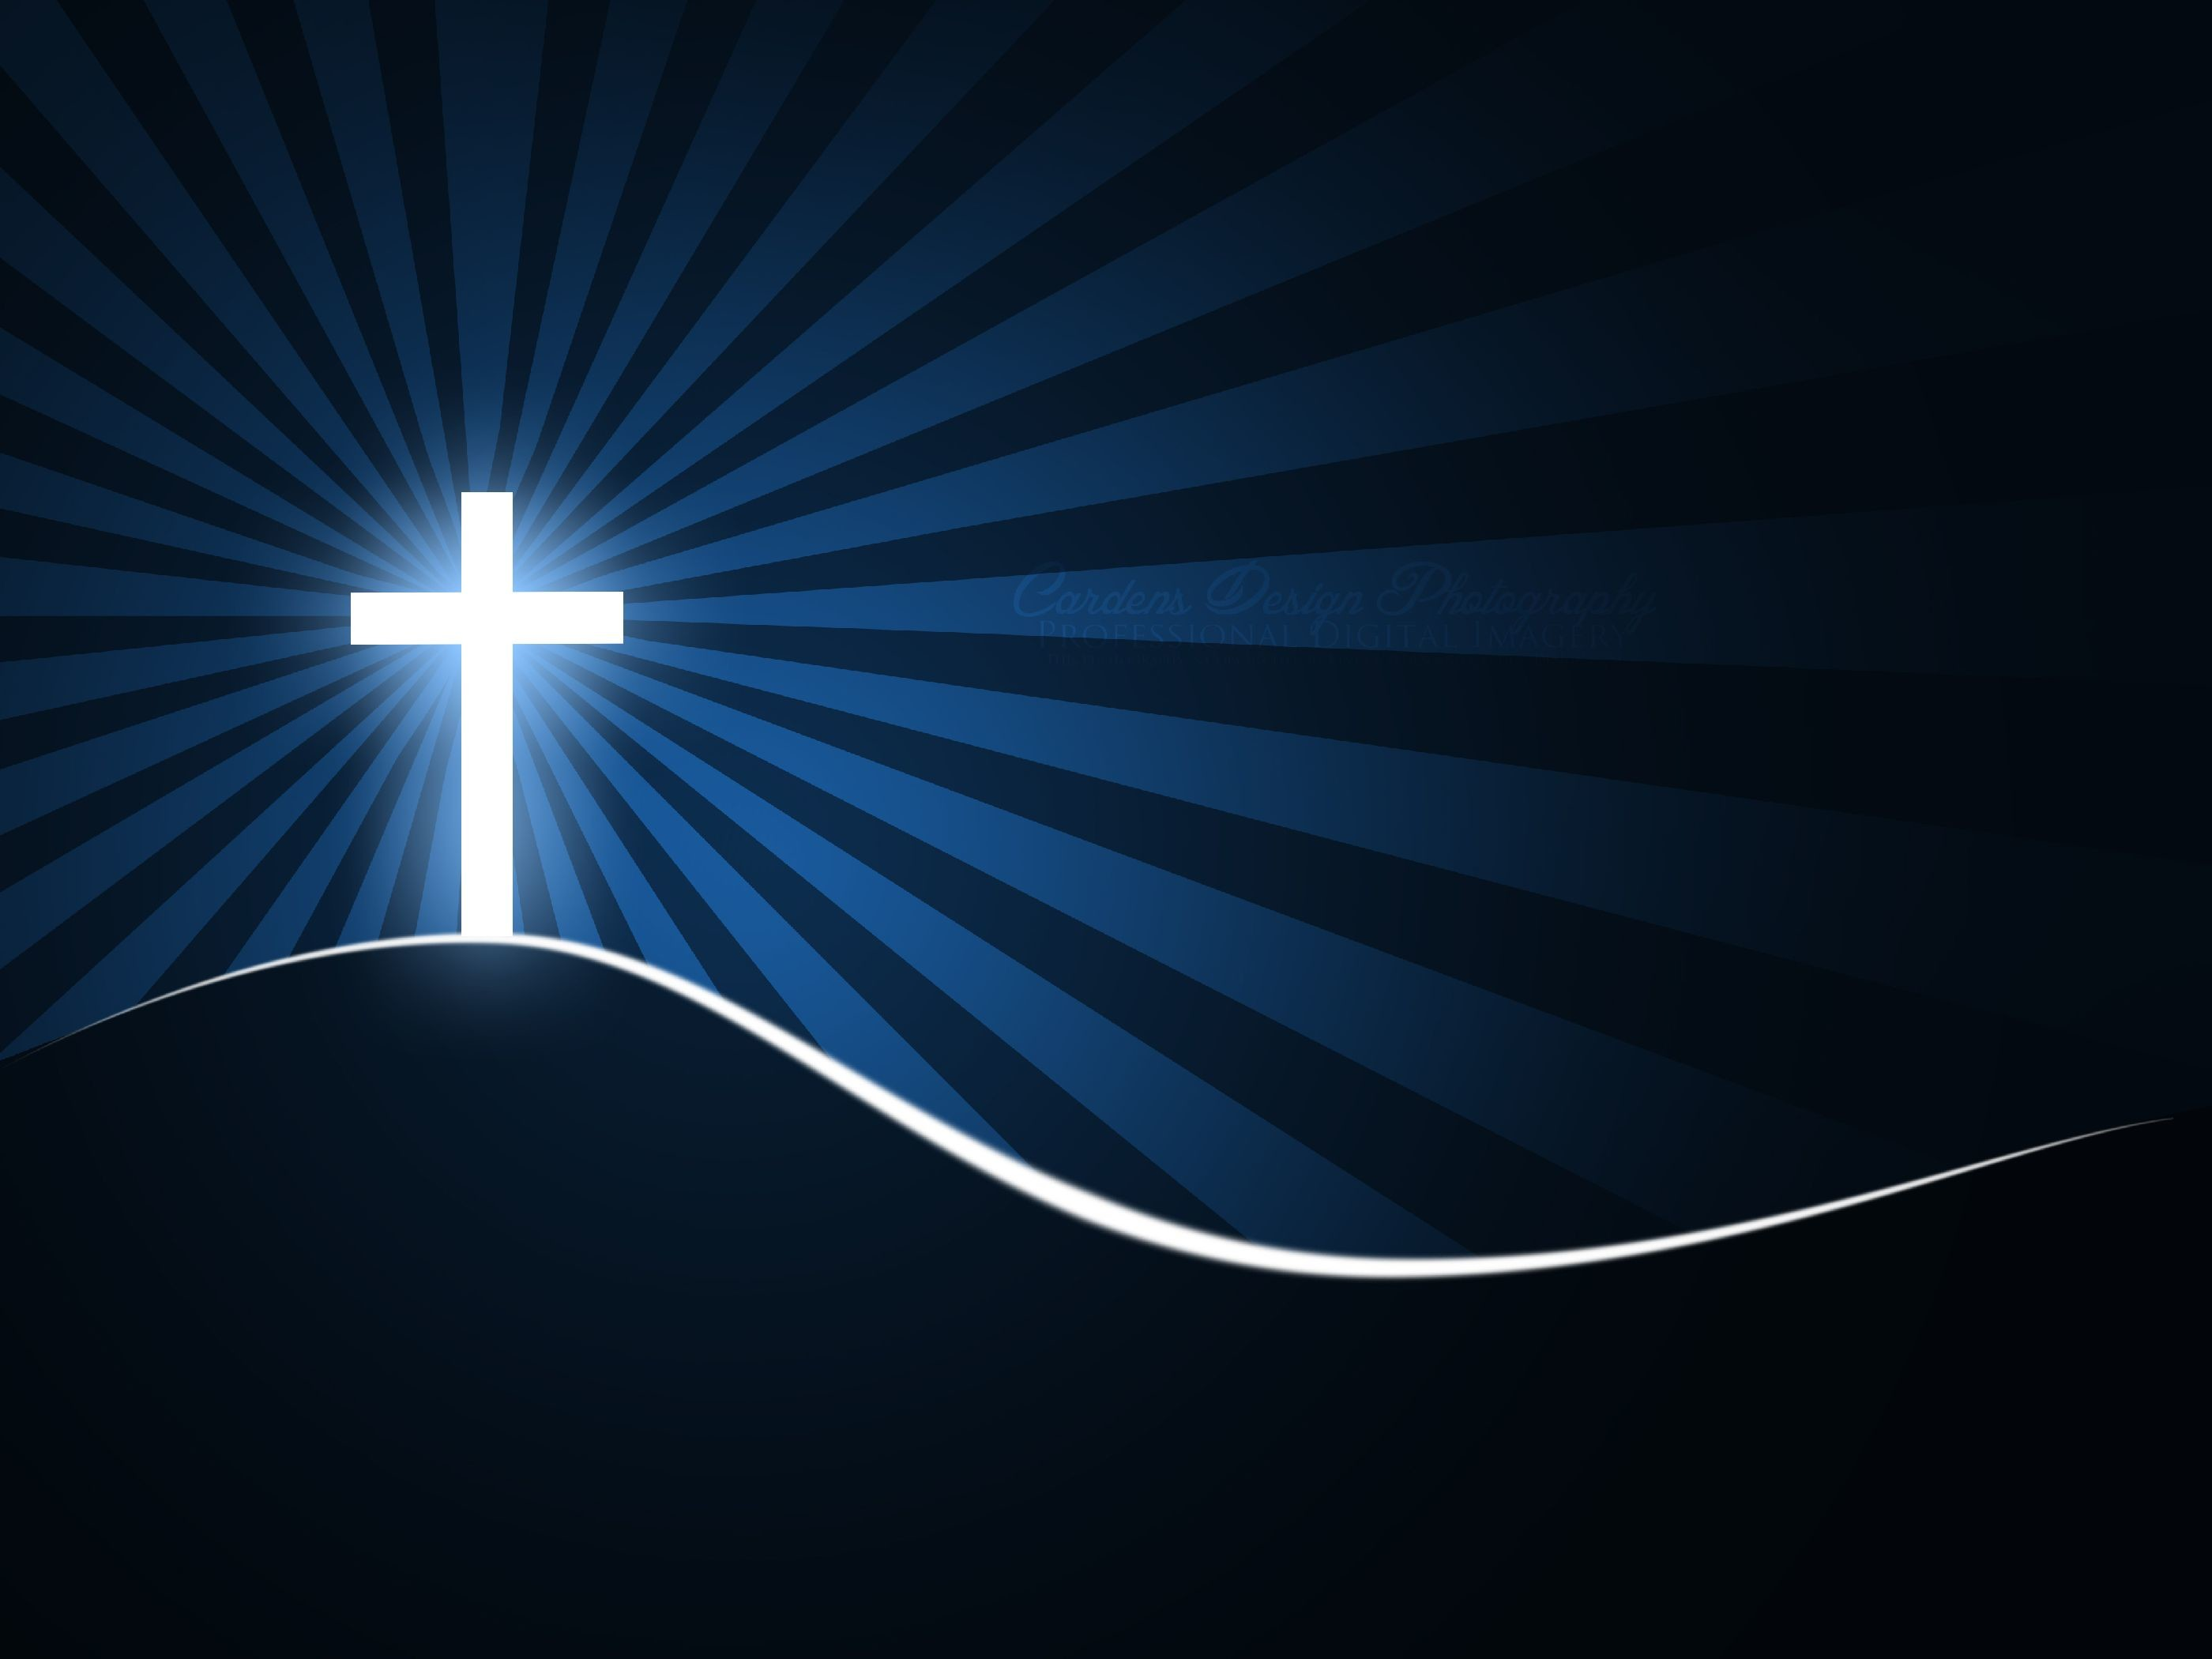 christian pictures | image code religion 0026 tags christian background  christian wallpaper .